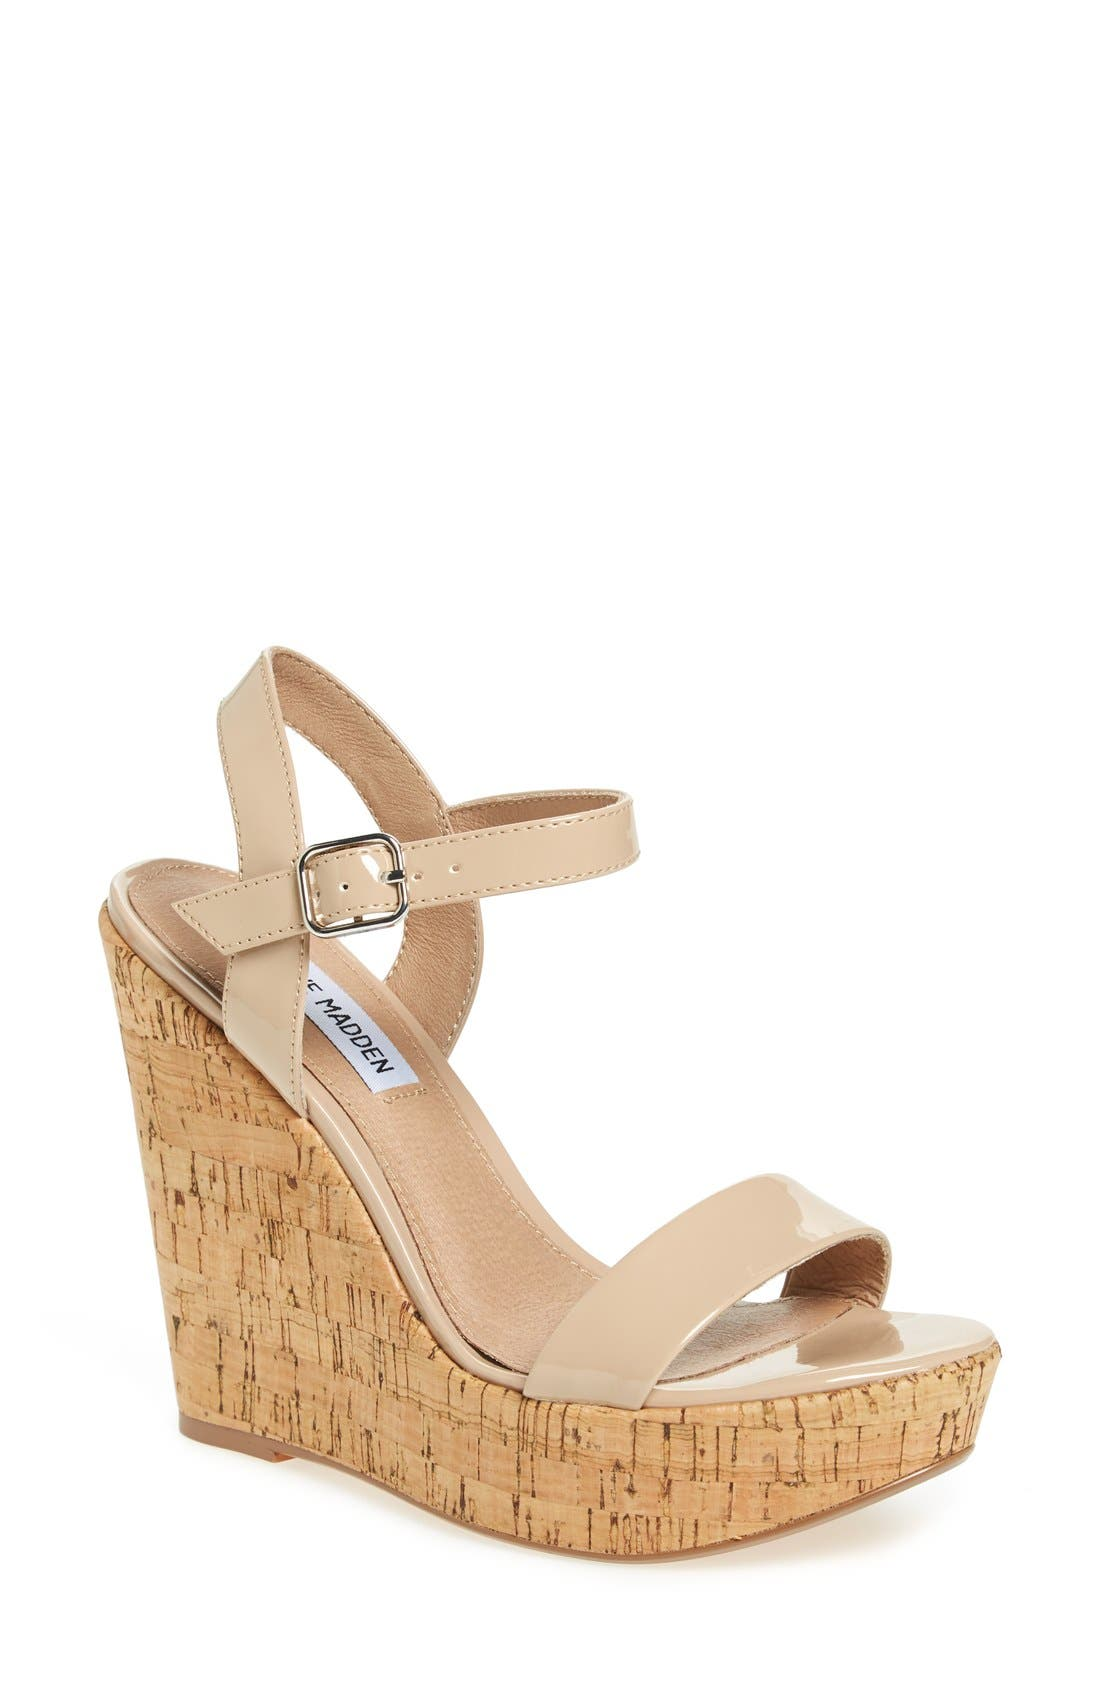 Main Image - Steve Madden 'Ellina' Wedge Sandal (Women)